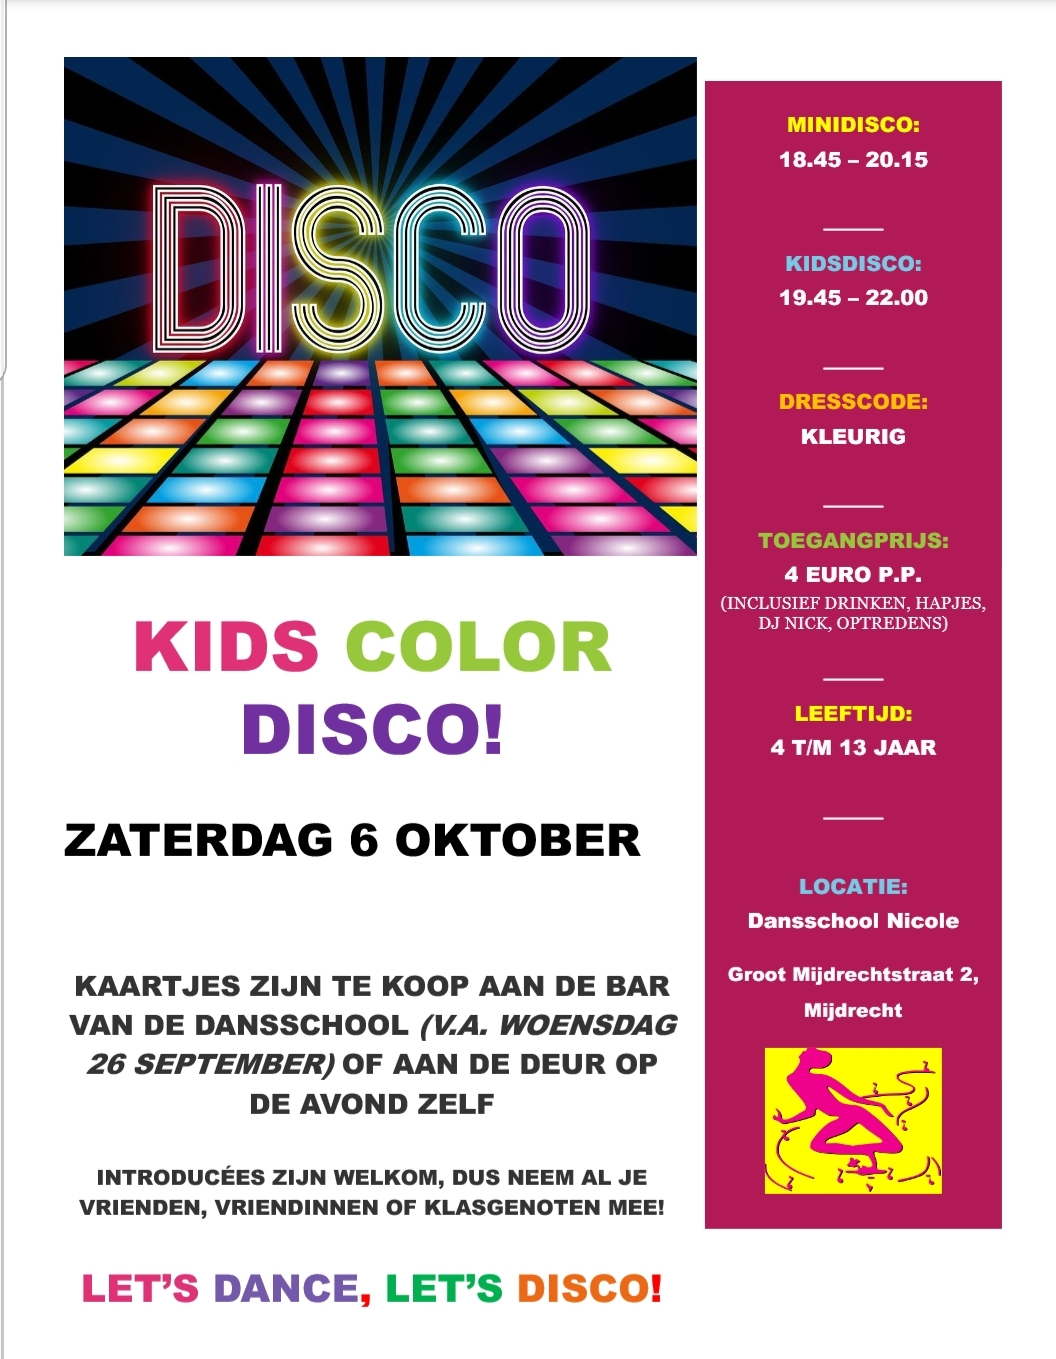 KIDS COLOR DISCO!